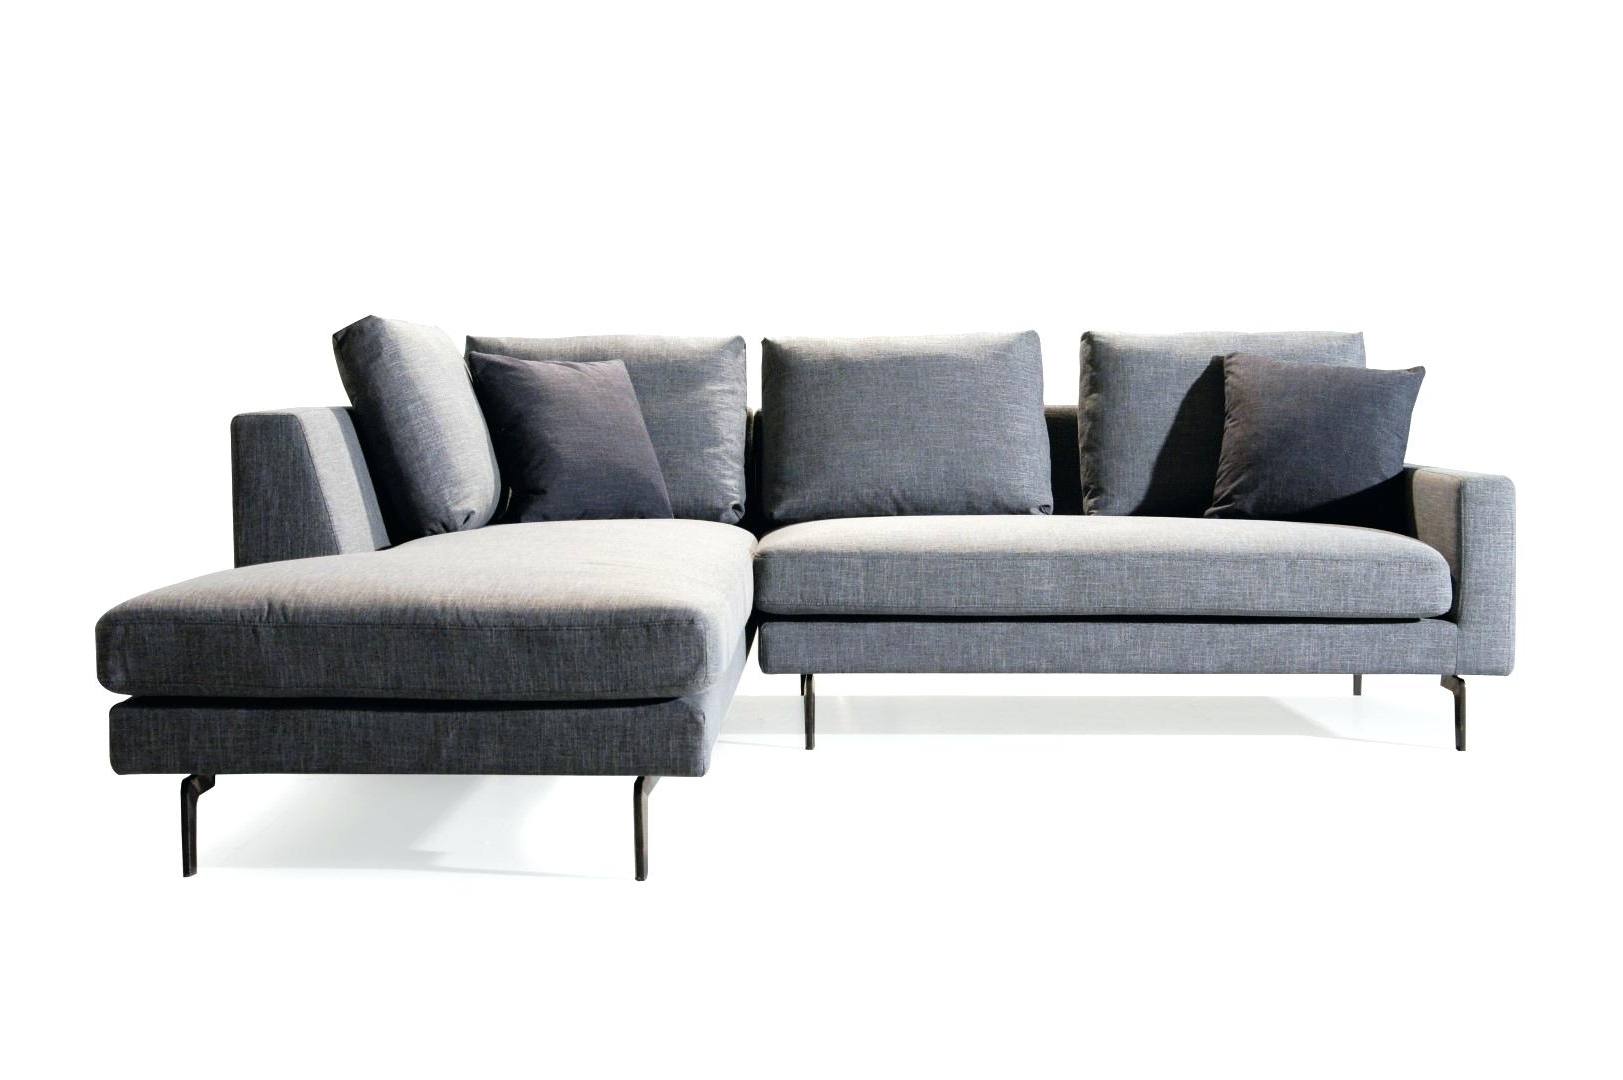 Latest Kijiji Calgary Sectional Sofas For Furniture : Corner Sofa Uk Sectional Couch Layout Sectional Sofa (View 6 of 15)